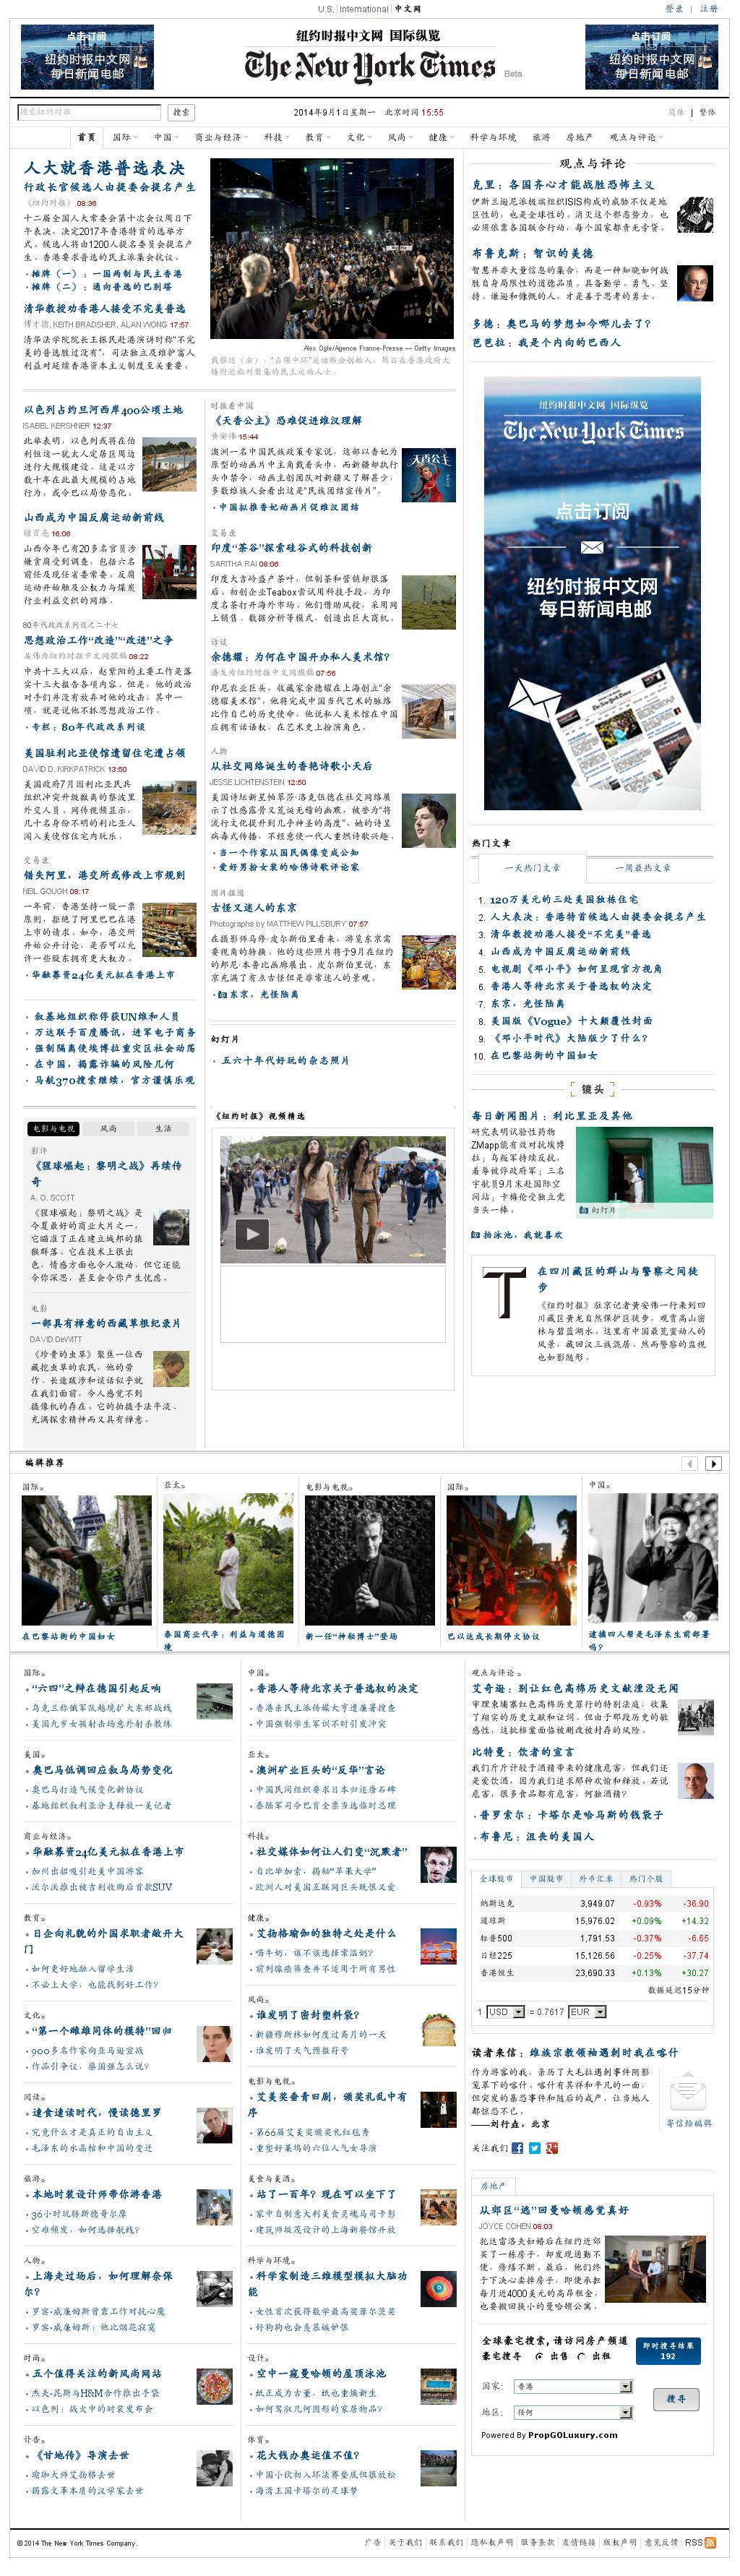 The New York Times (Chinese) at Monday Sept. 1, 2014, 8:11 a.m. UTC